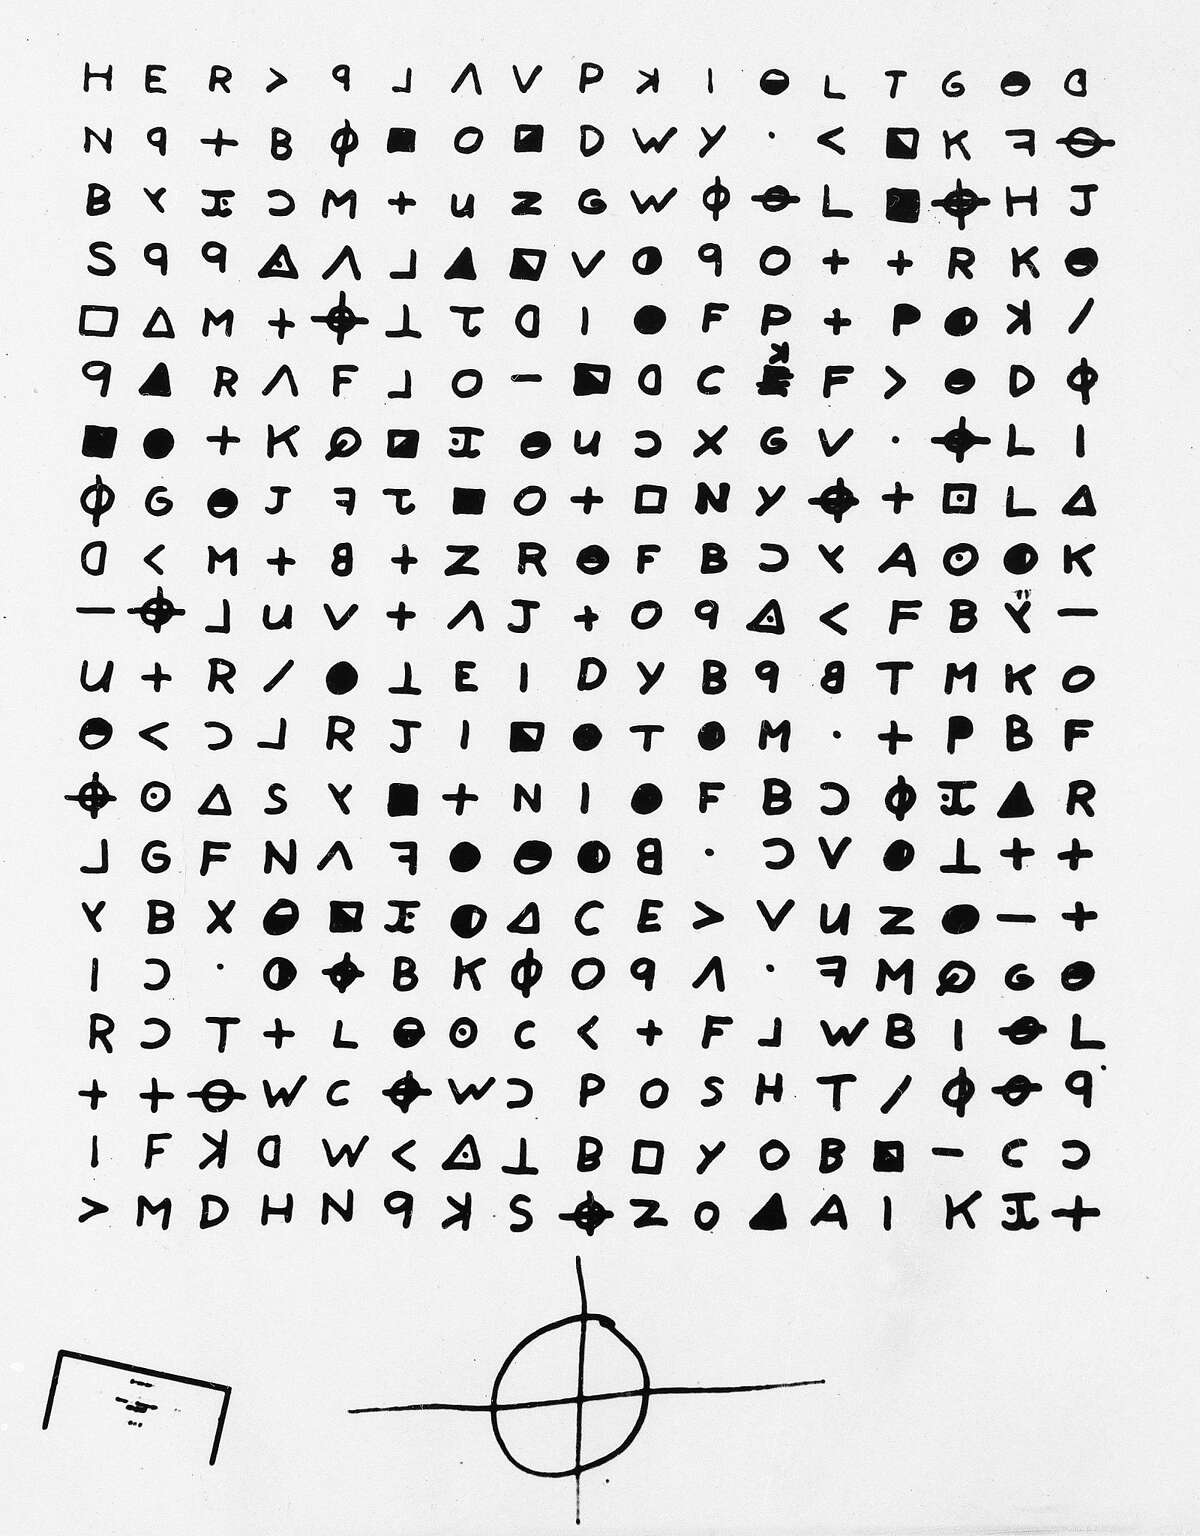 This is an undated copy of a cryptogram sent to the San Francisco Chronicle, Nov. 11, 1969 by the Zodiac Killer. The Zodiac killer is blamed for at least five murders in 1968 and 1969 in the San Francisco Bay Area. He was never caught,